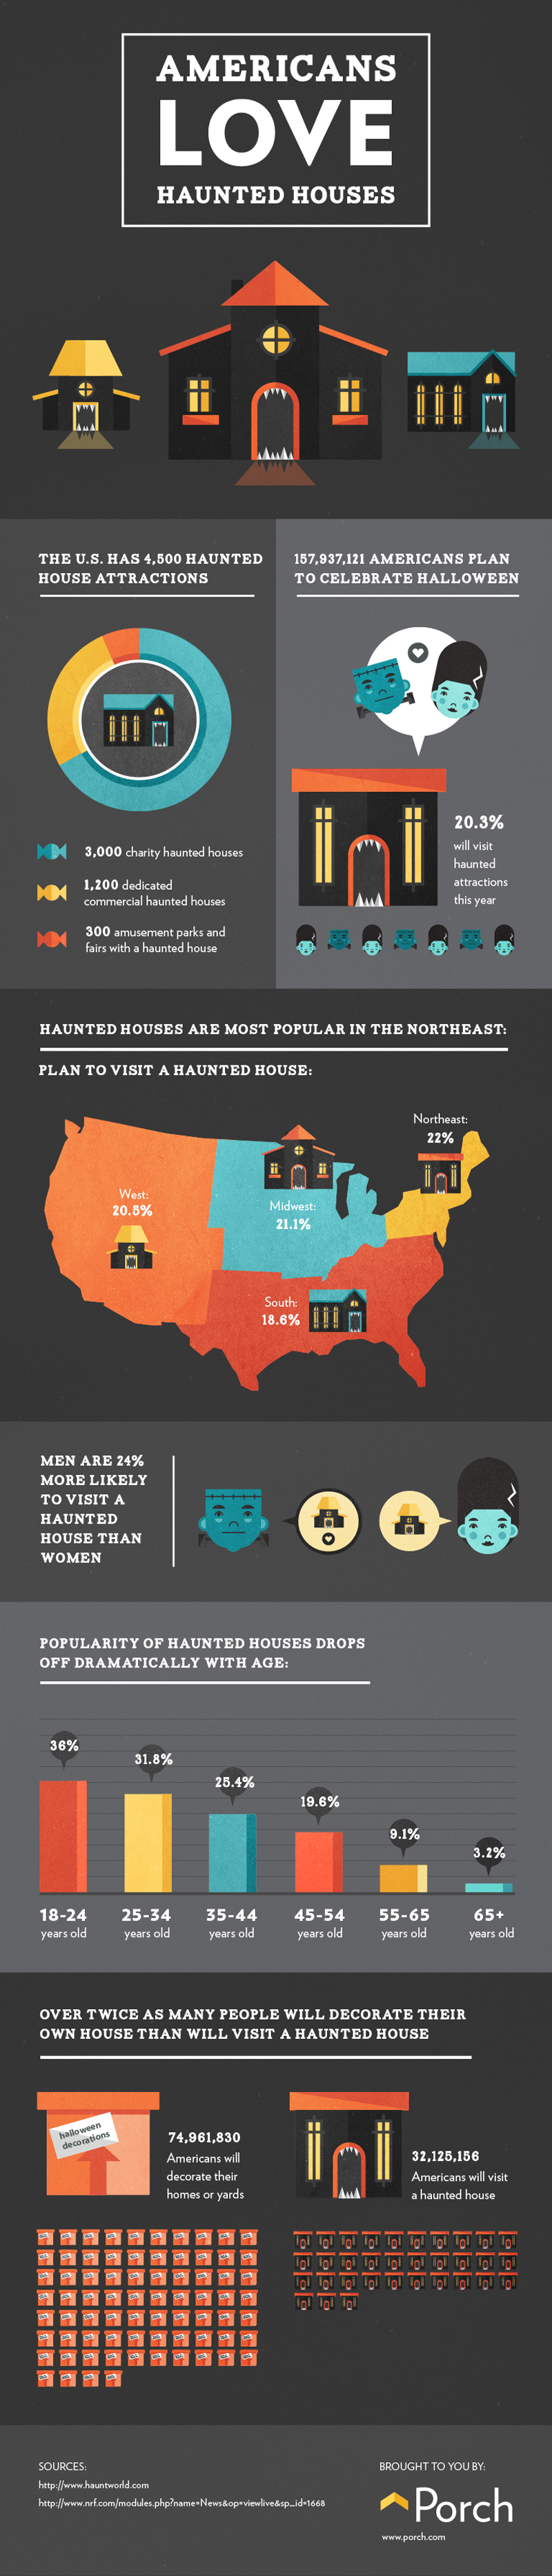 Americans Love Haunted Houses